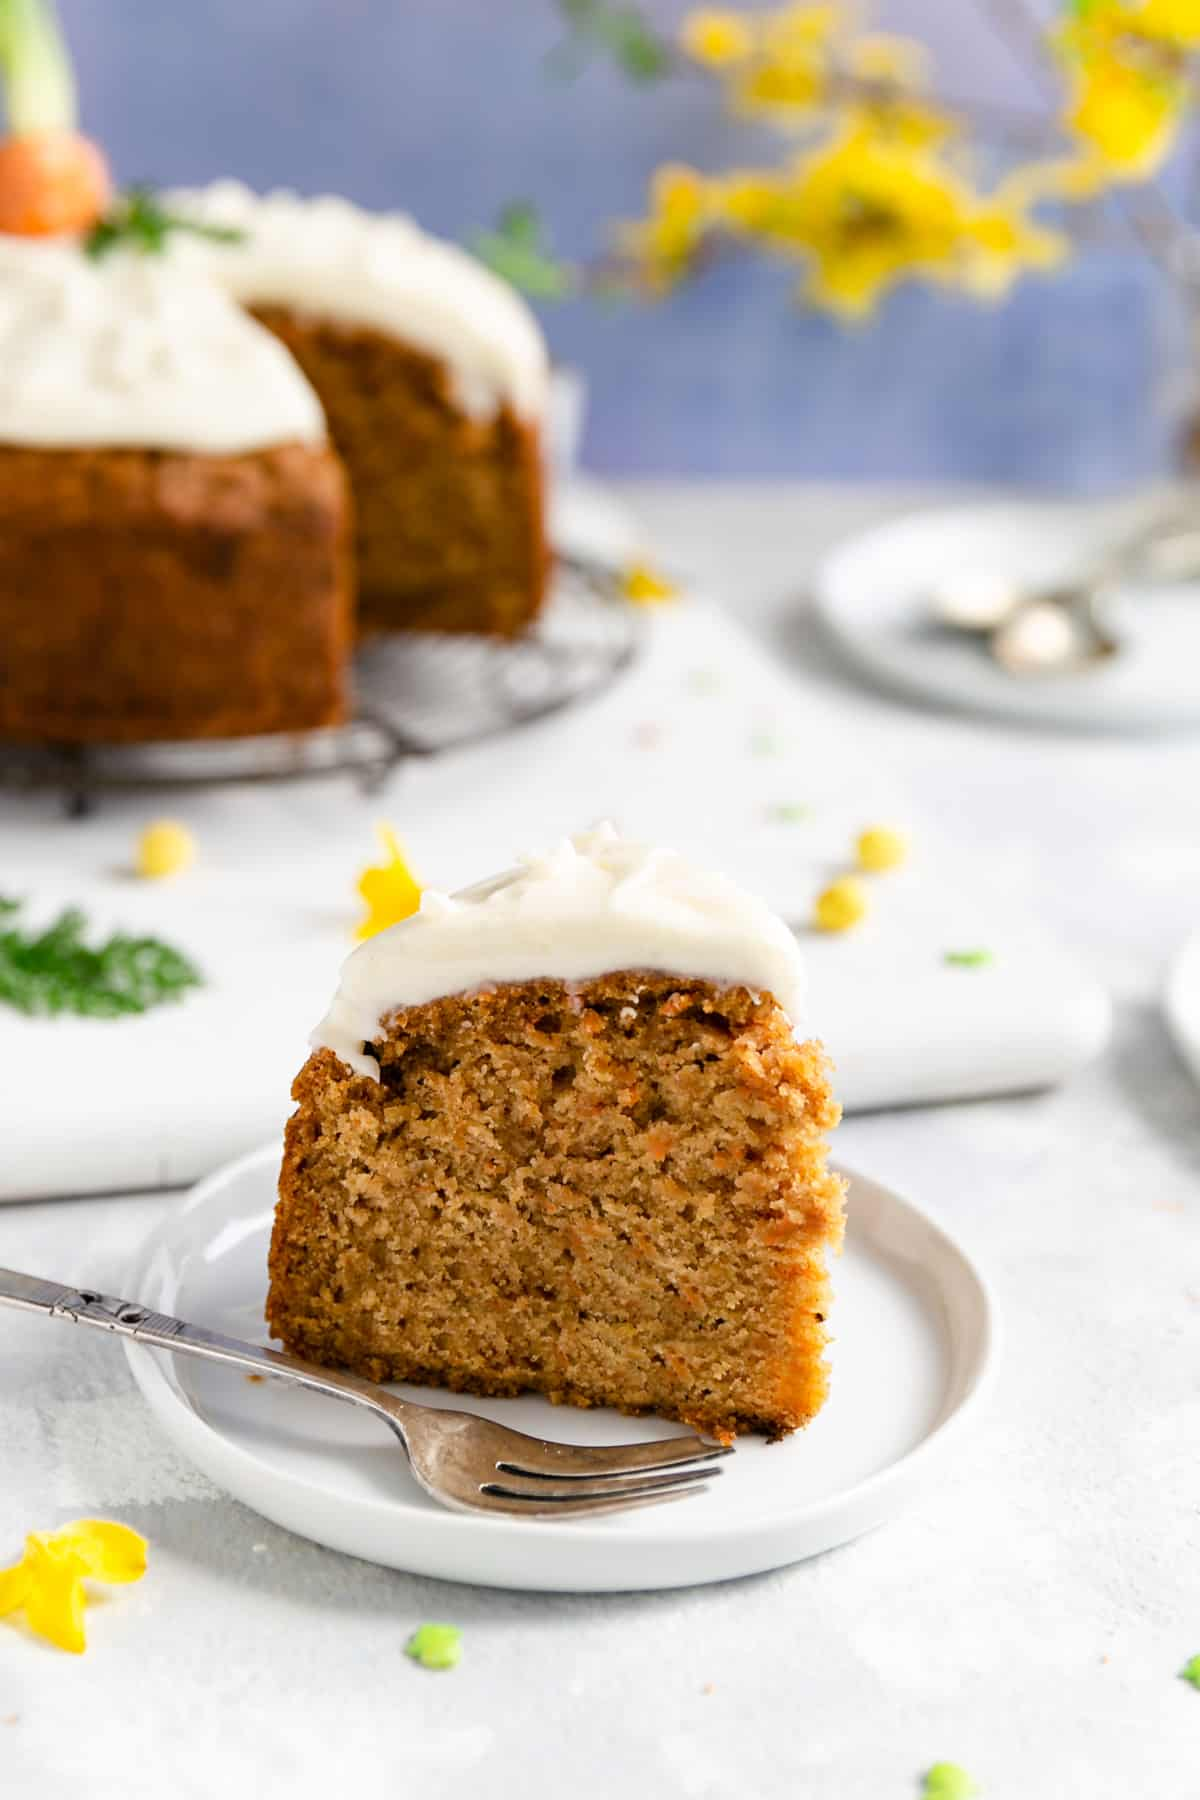 side shot of a slice of the carrot cake served on a small white plate